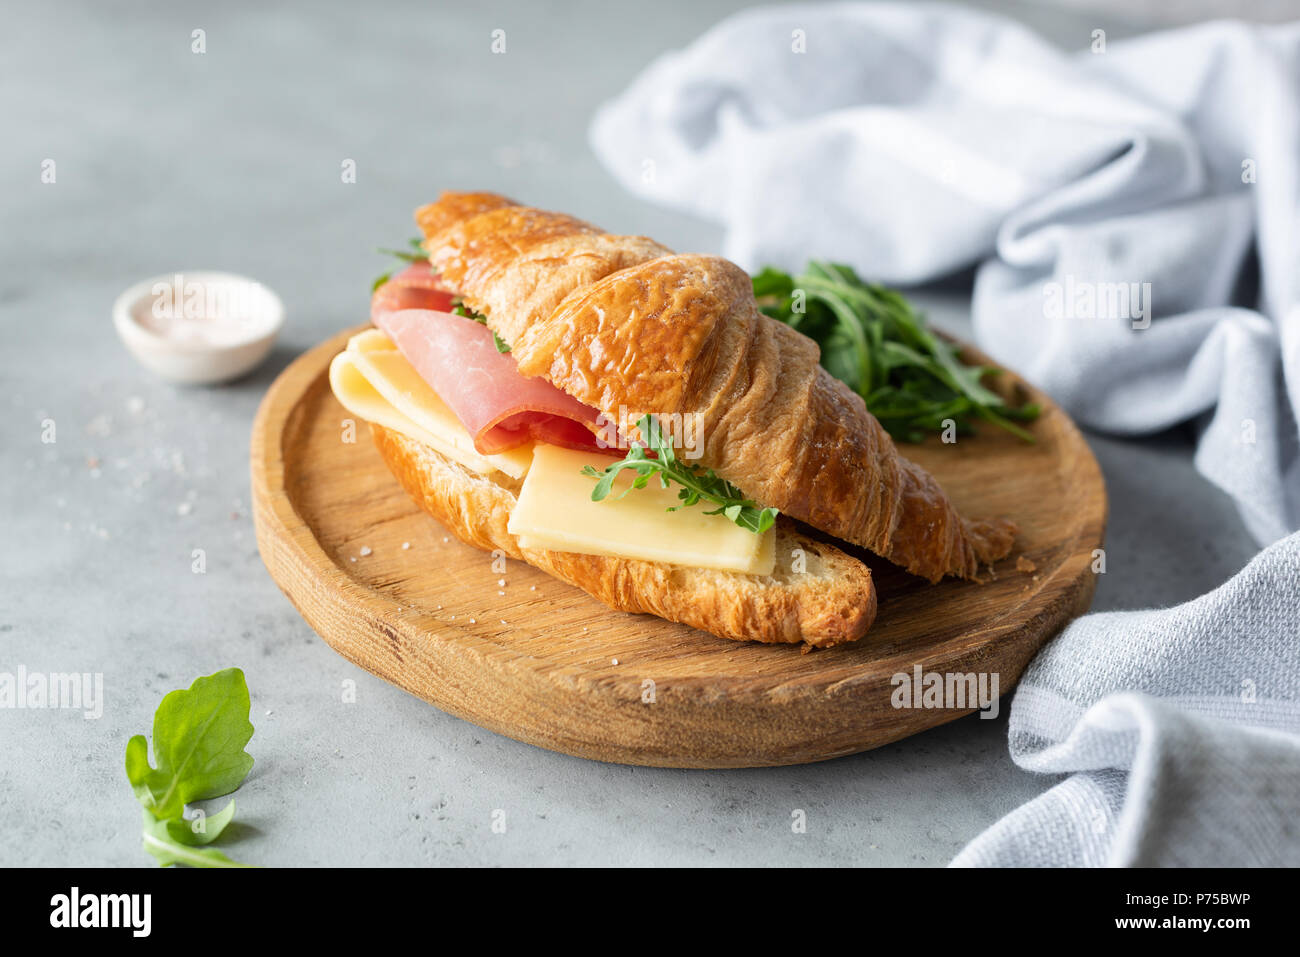 Croissant sandwich with cheese, ham and arugula on wooden cutting board, gray concrete background. Selective focus. Tasty breakfast sandwich or snack - Stock Image